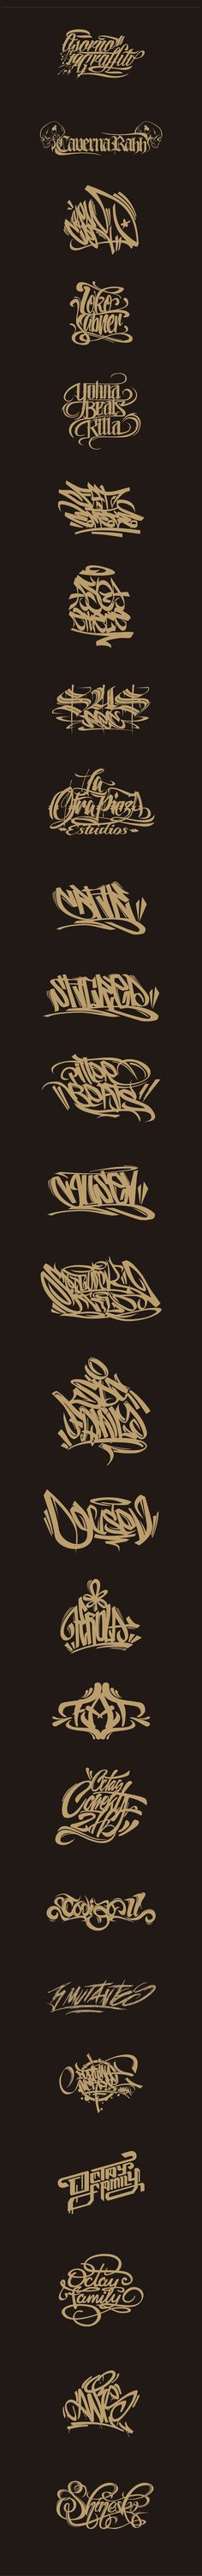 Lettering, Logos, Graffiti on Behance